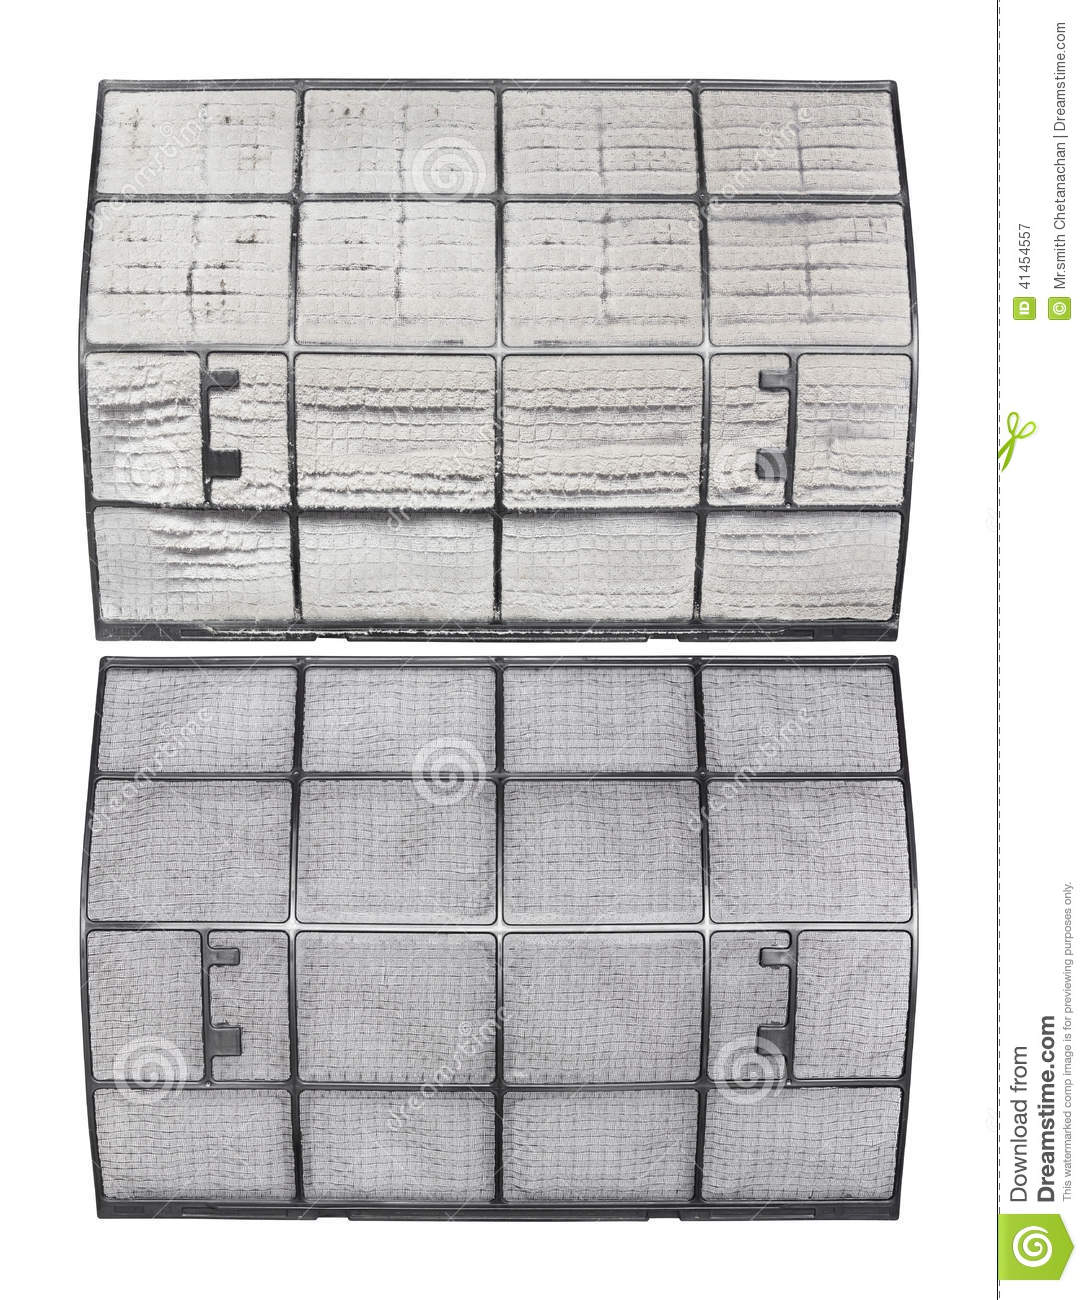 how to clean room air conditioner filter